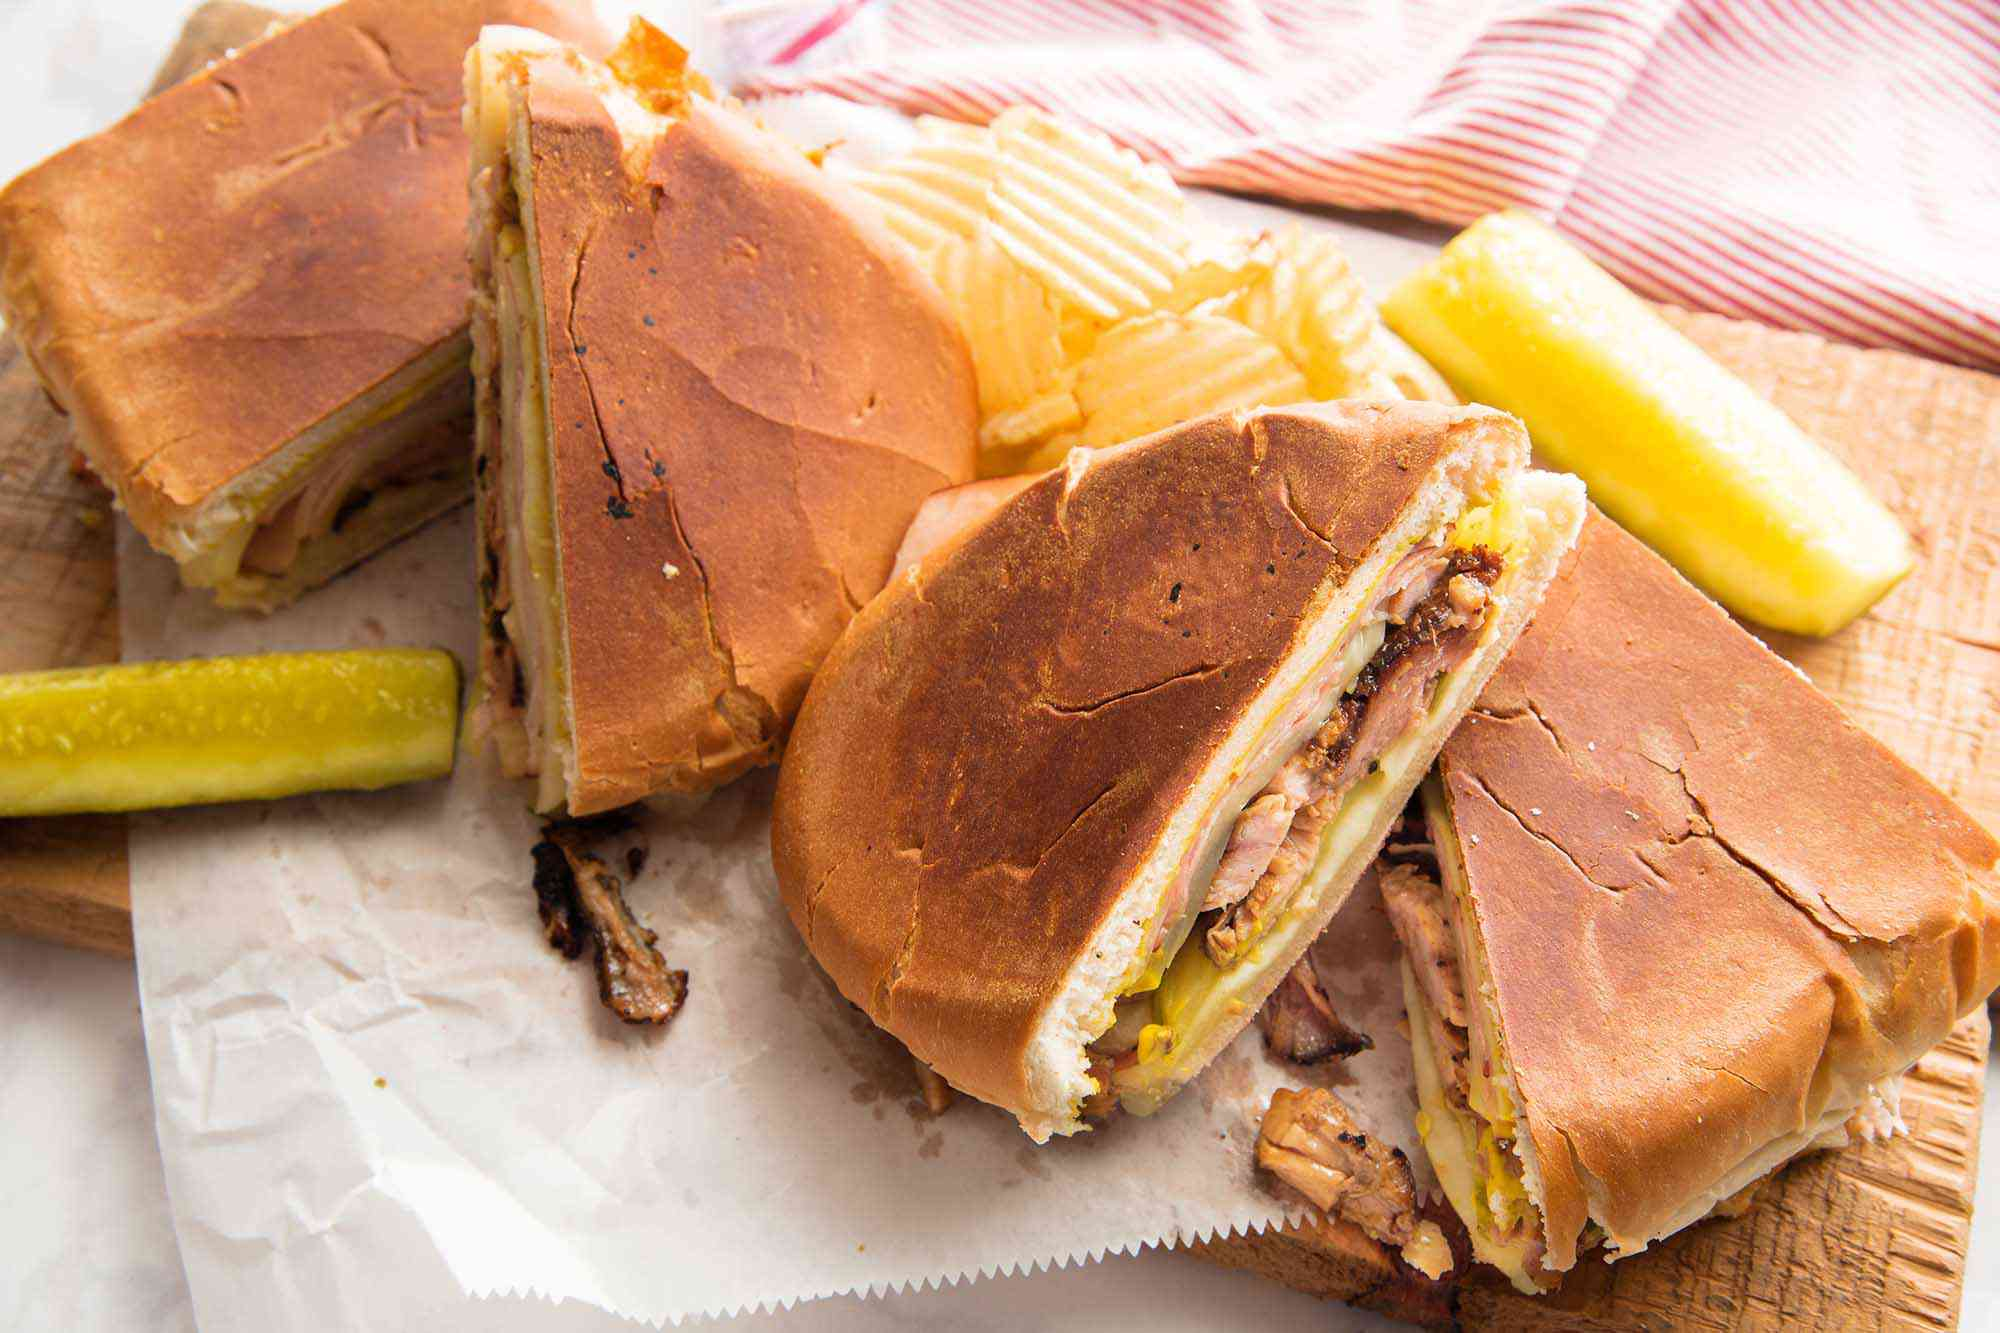 A grilled cuban sandwich is cut into quarters and resting on top of parchment paper and cutting board. Shredded pork and pickles are visible inside the sandwich. Pickles are on either side of the sandwich and a pink striped dish cloth is in the left hand corner.